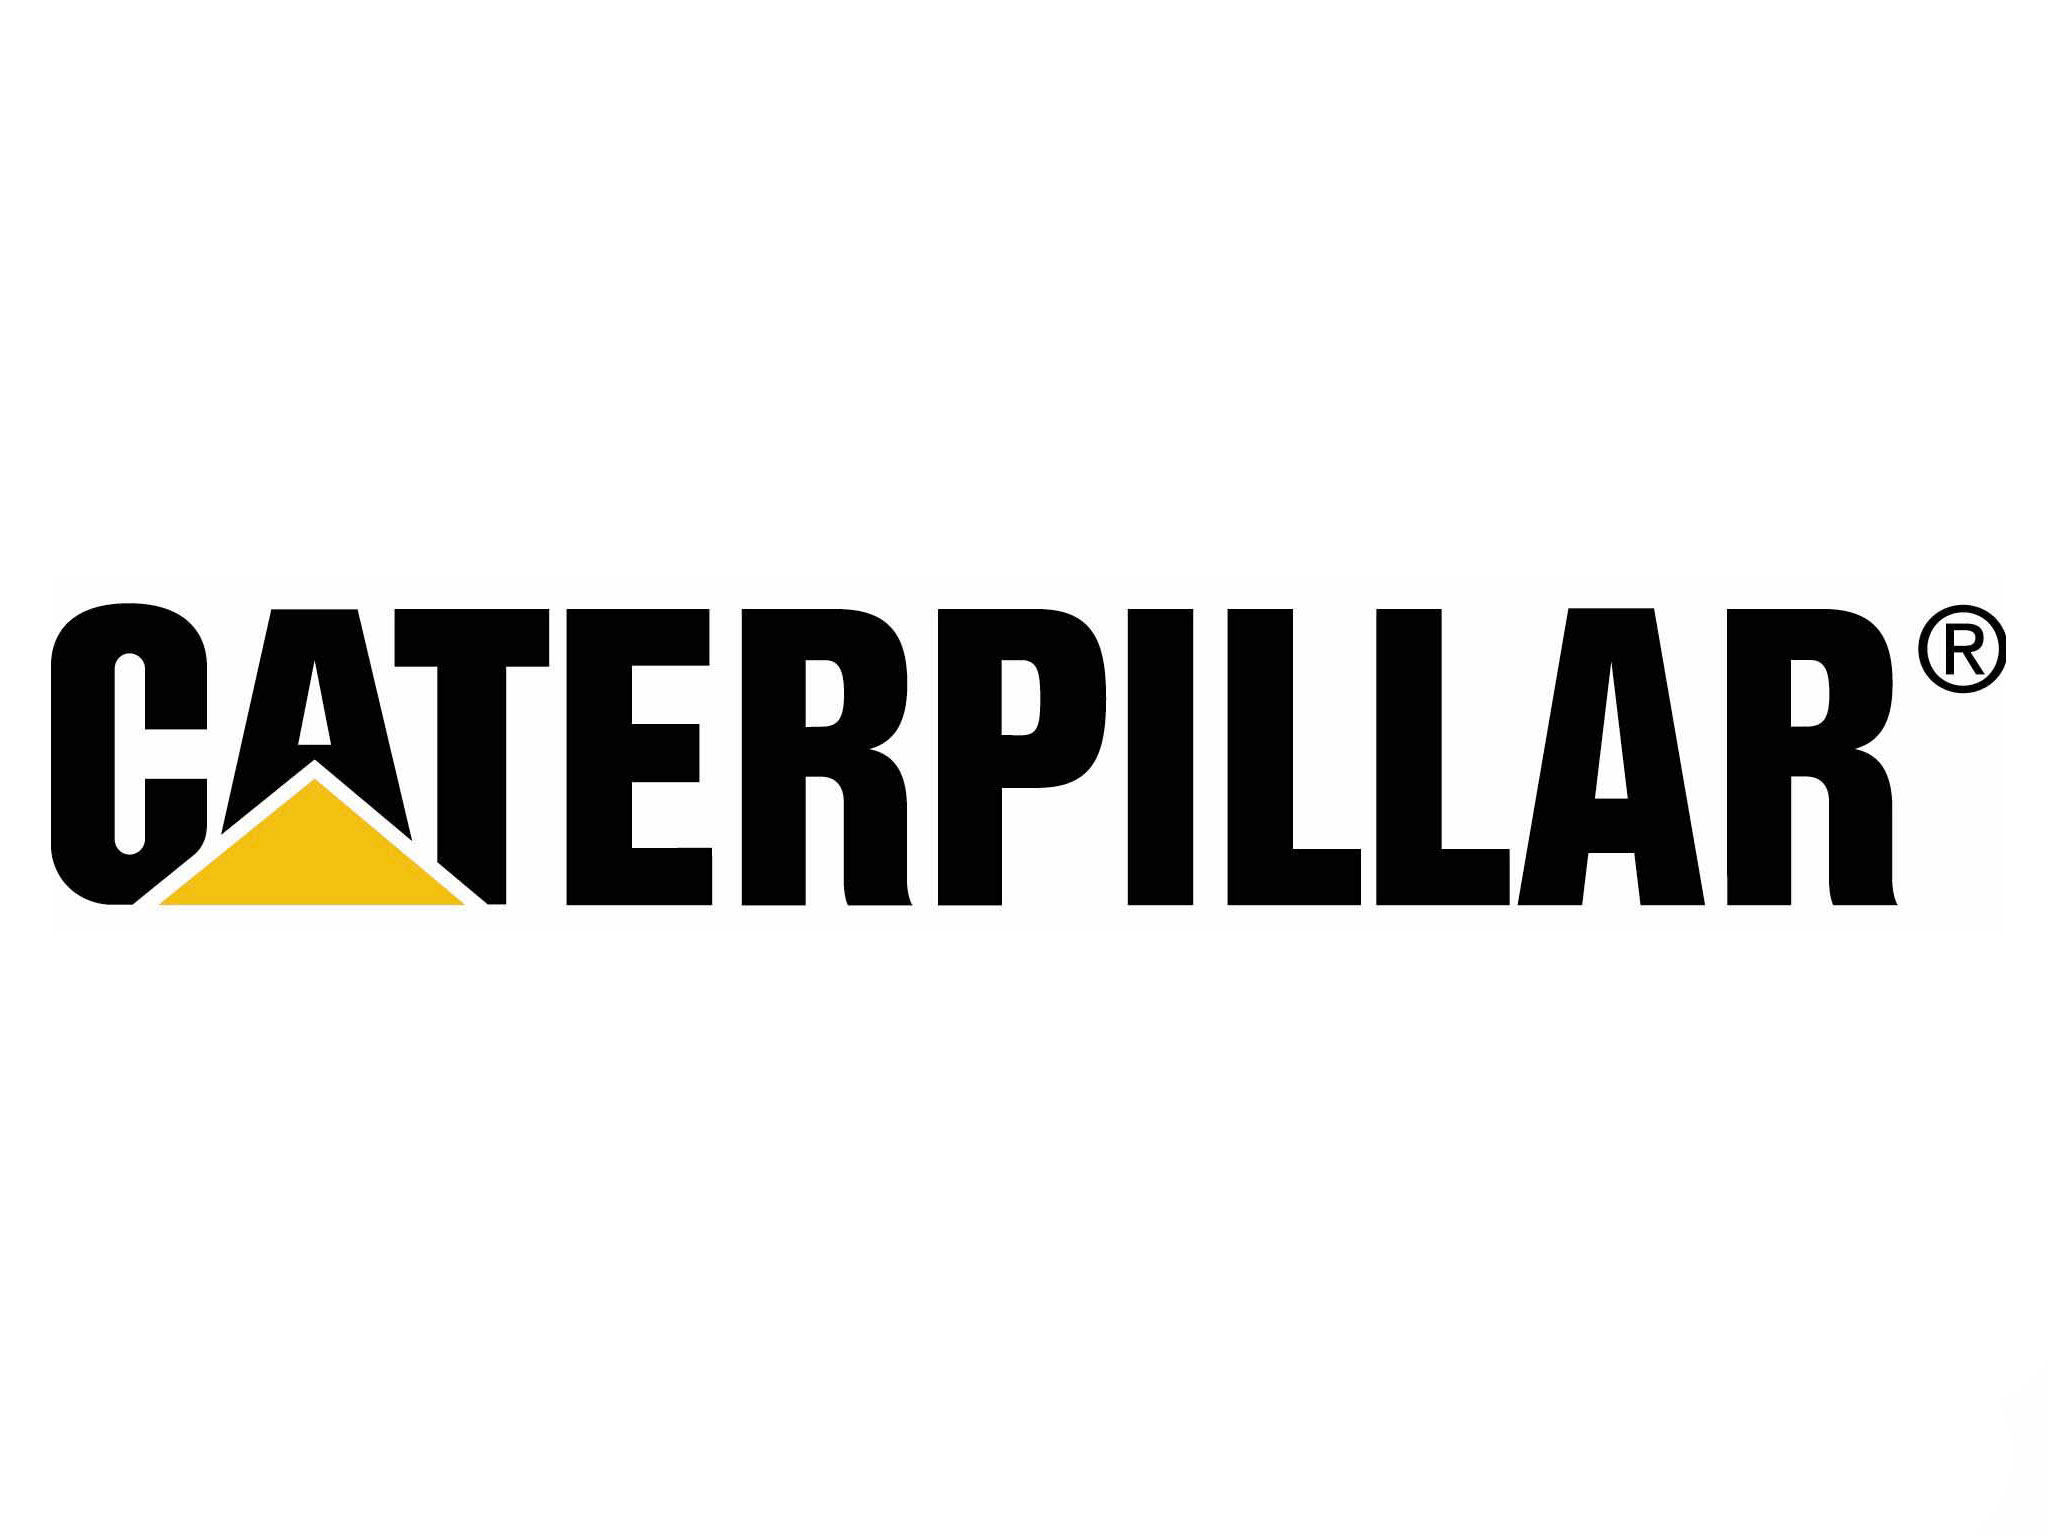 Caterpillar Logo Wallpaper